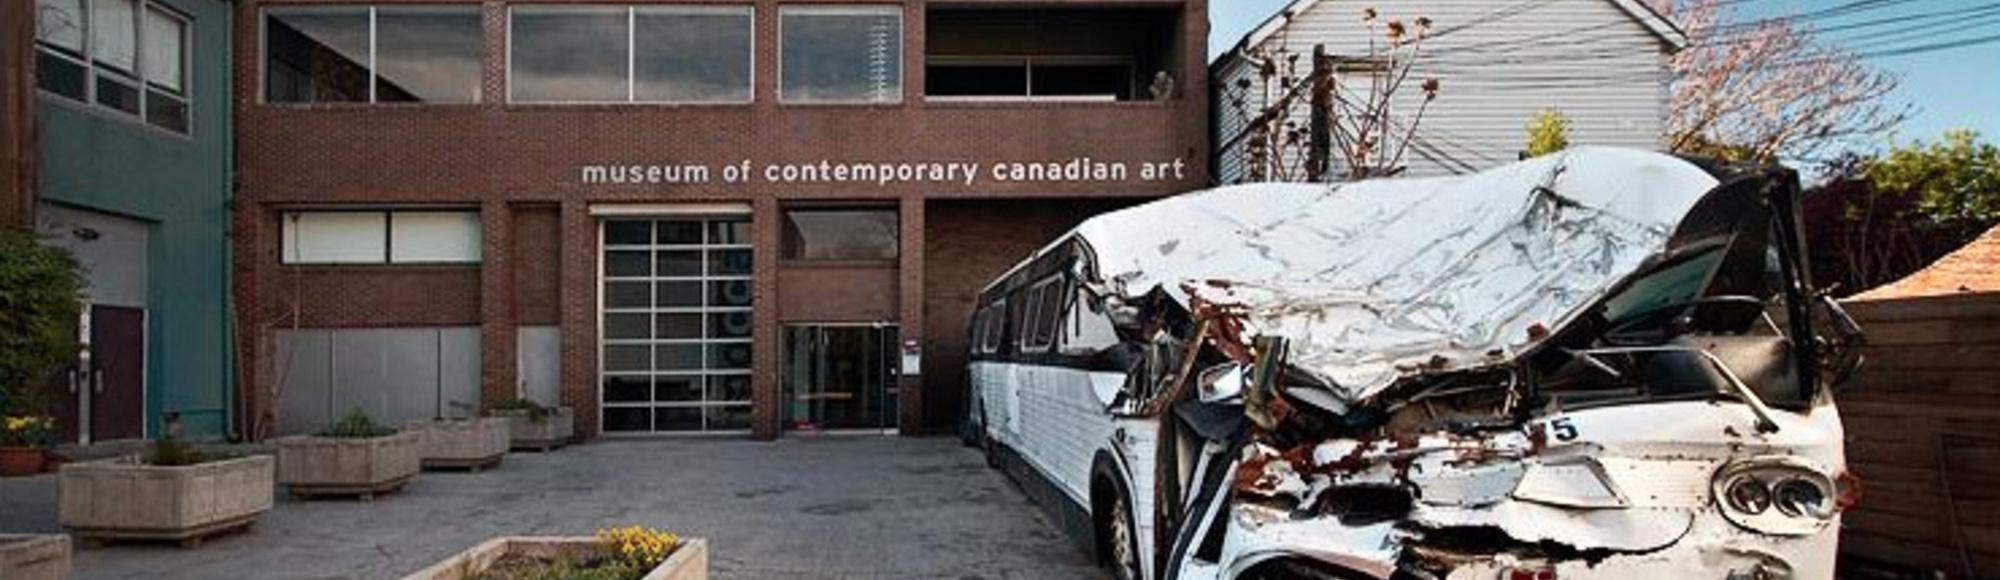 Condos Are Destroying Art Galleries on Queen West